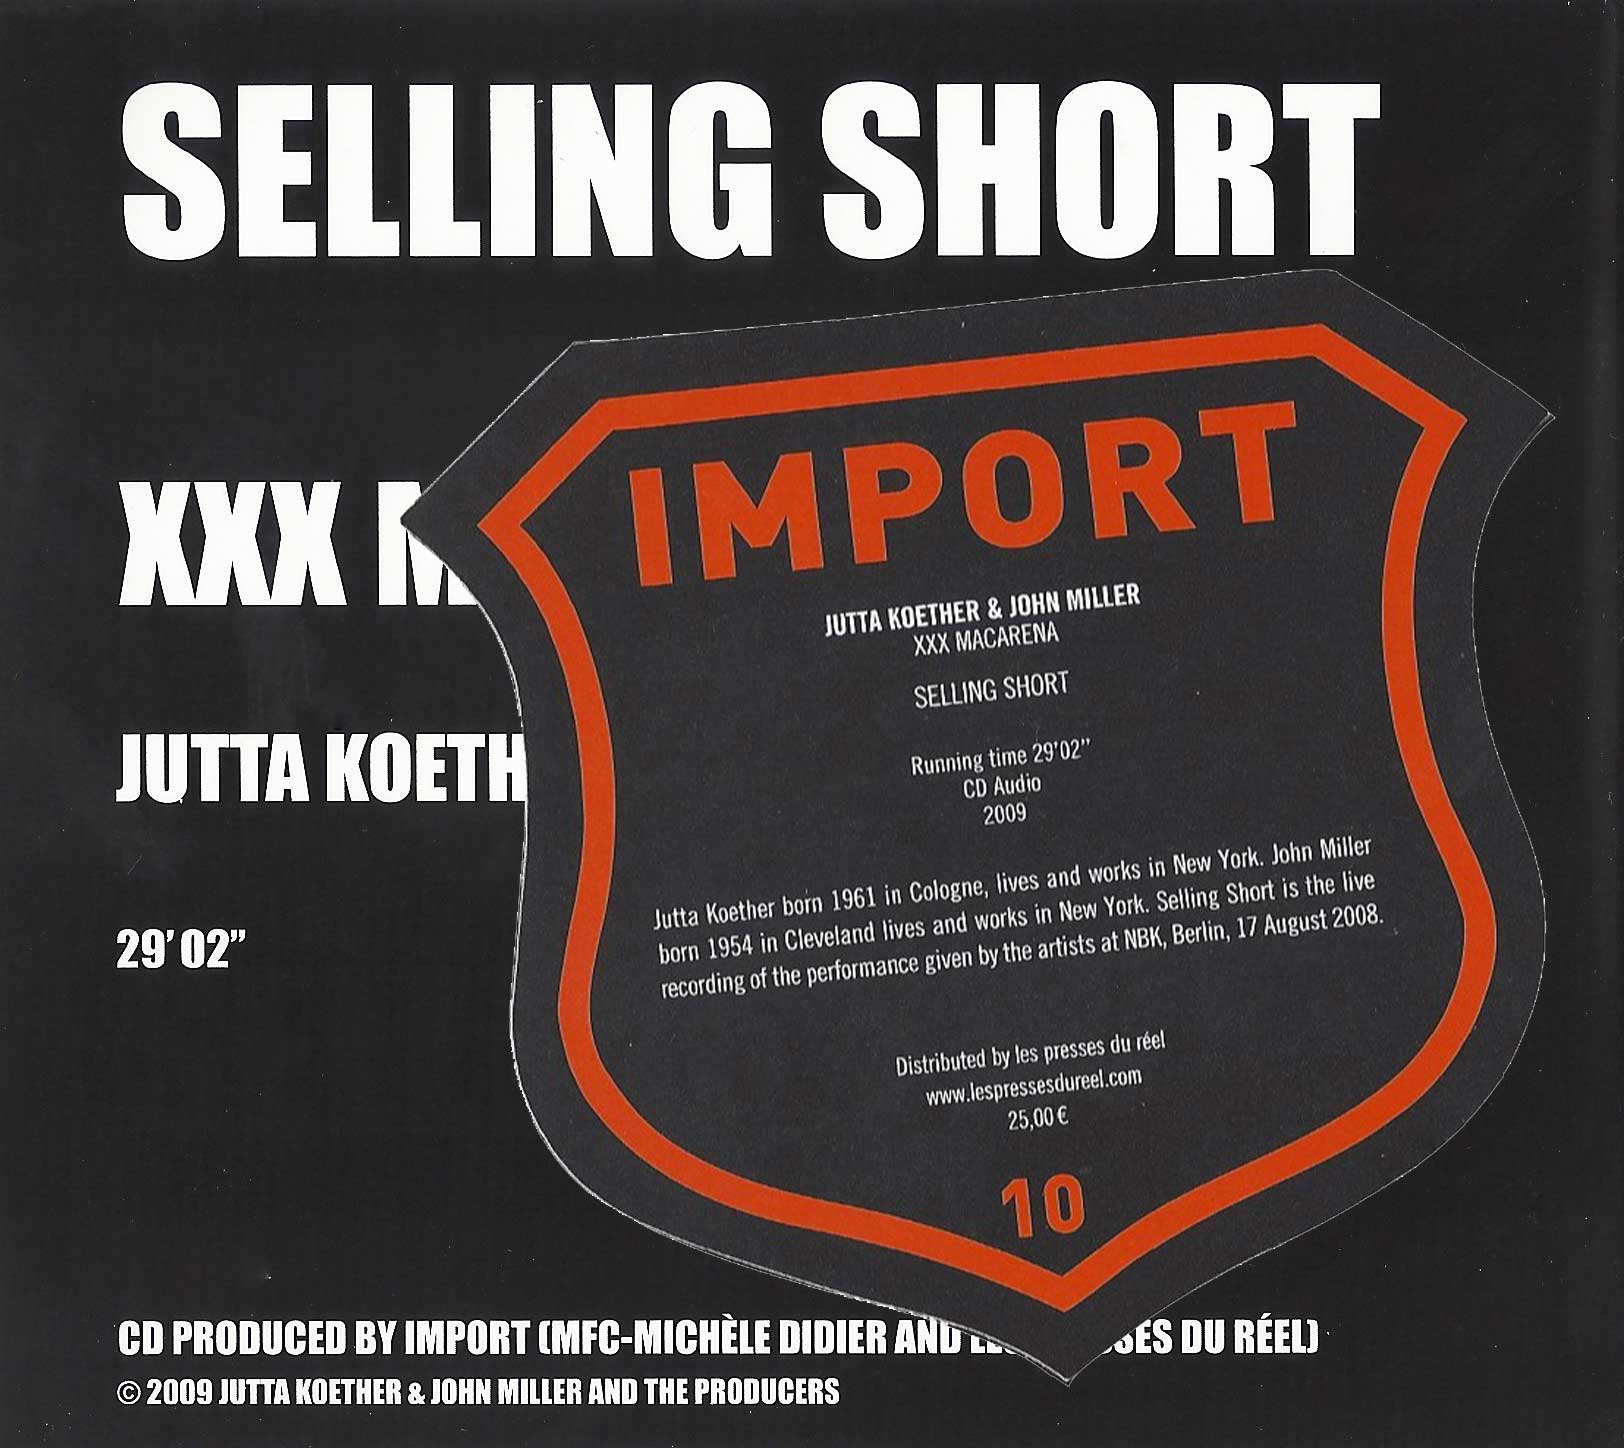 Jutta Koether & John Miller - Selling Short, 2009